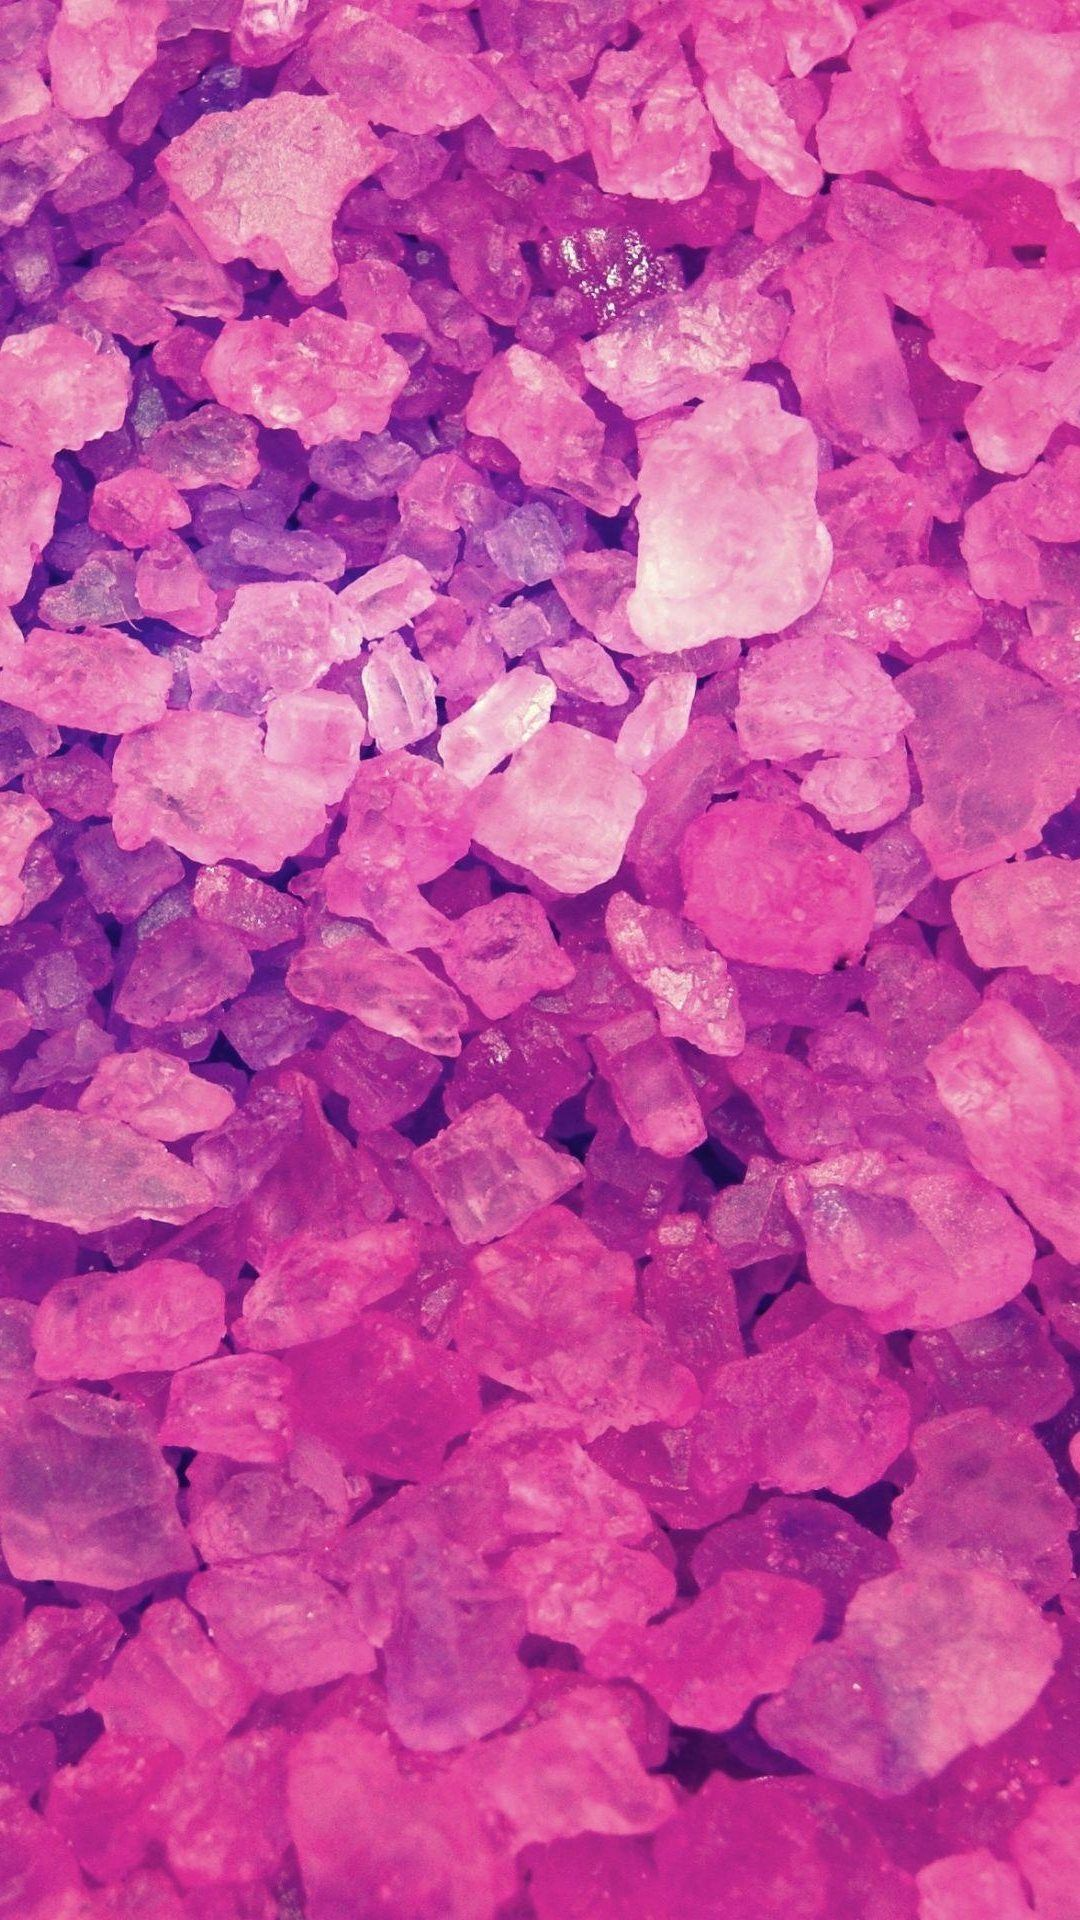 75 Creative Textures Iphone Wallpapers Free To Download Black Pink Kpop Pink Wallpaper Pink Crystal